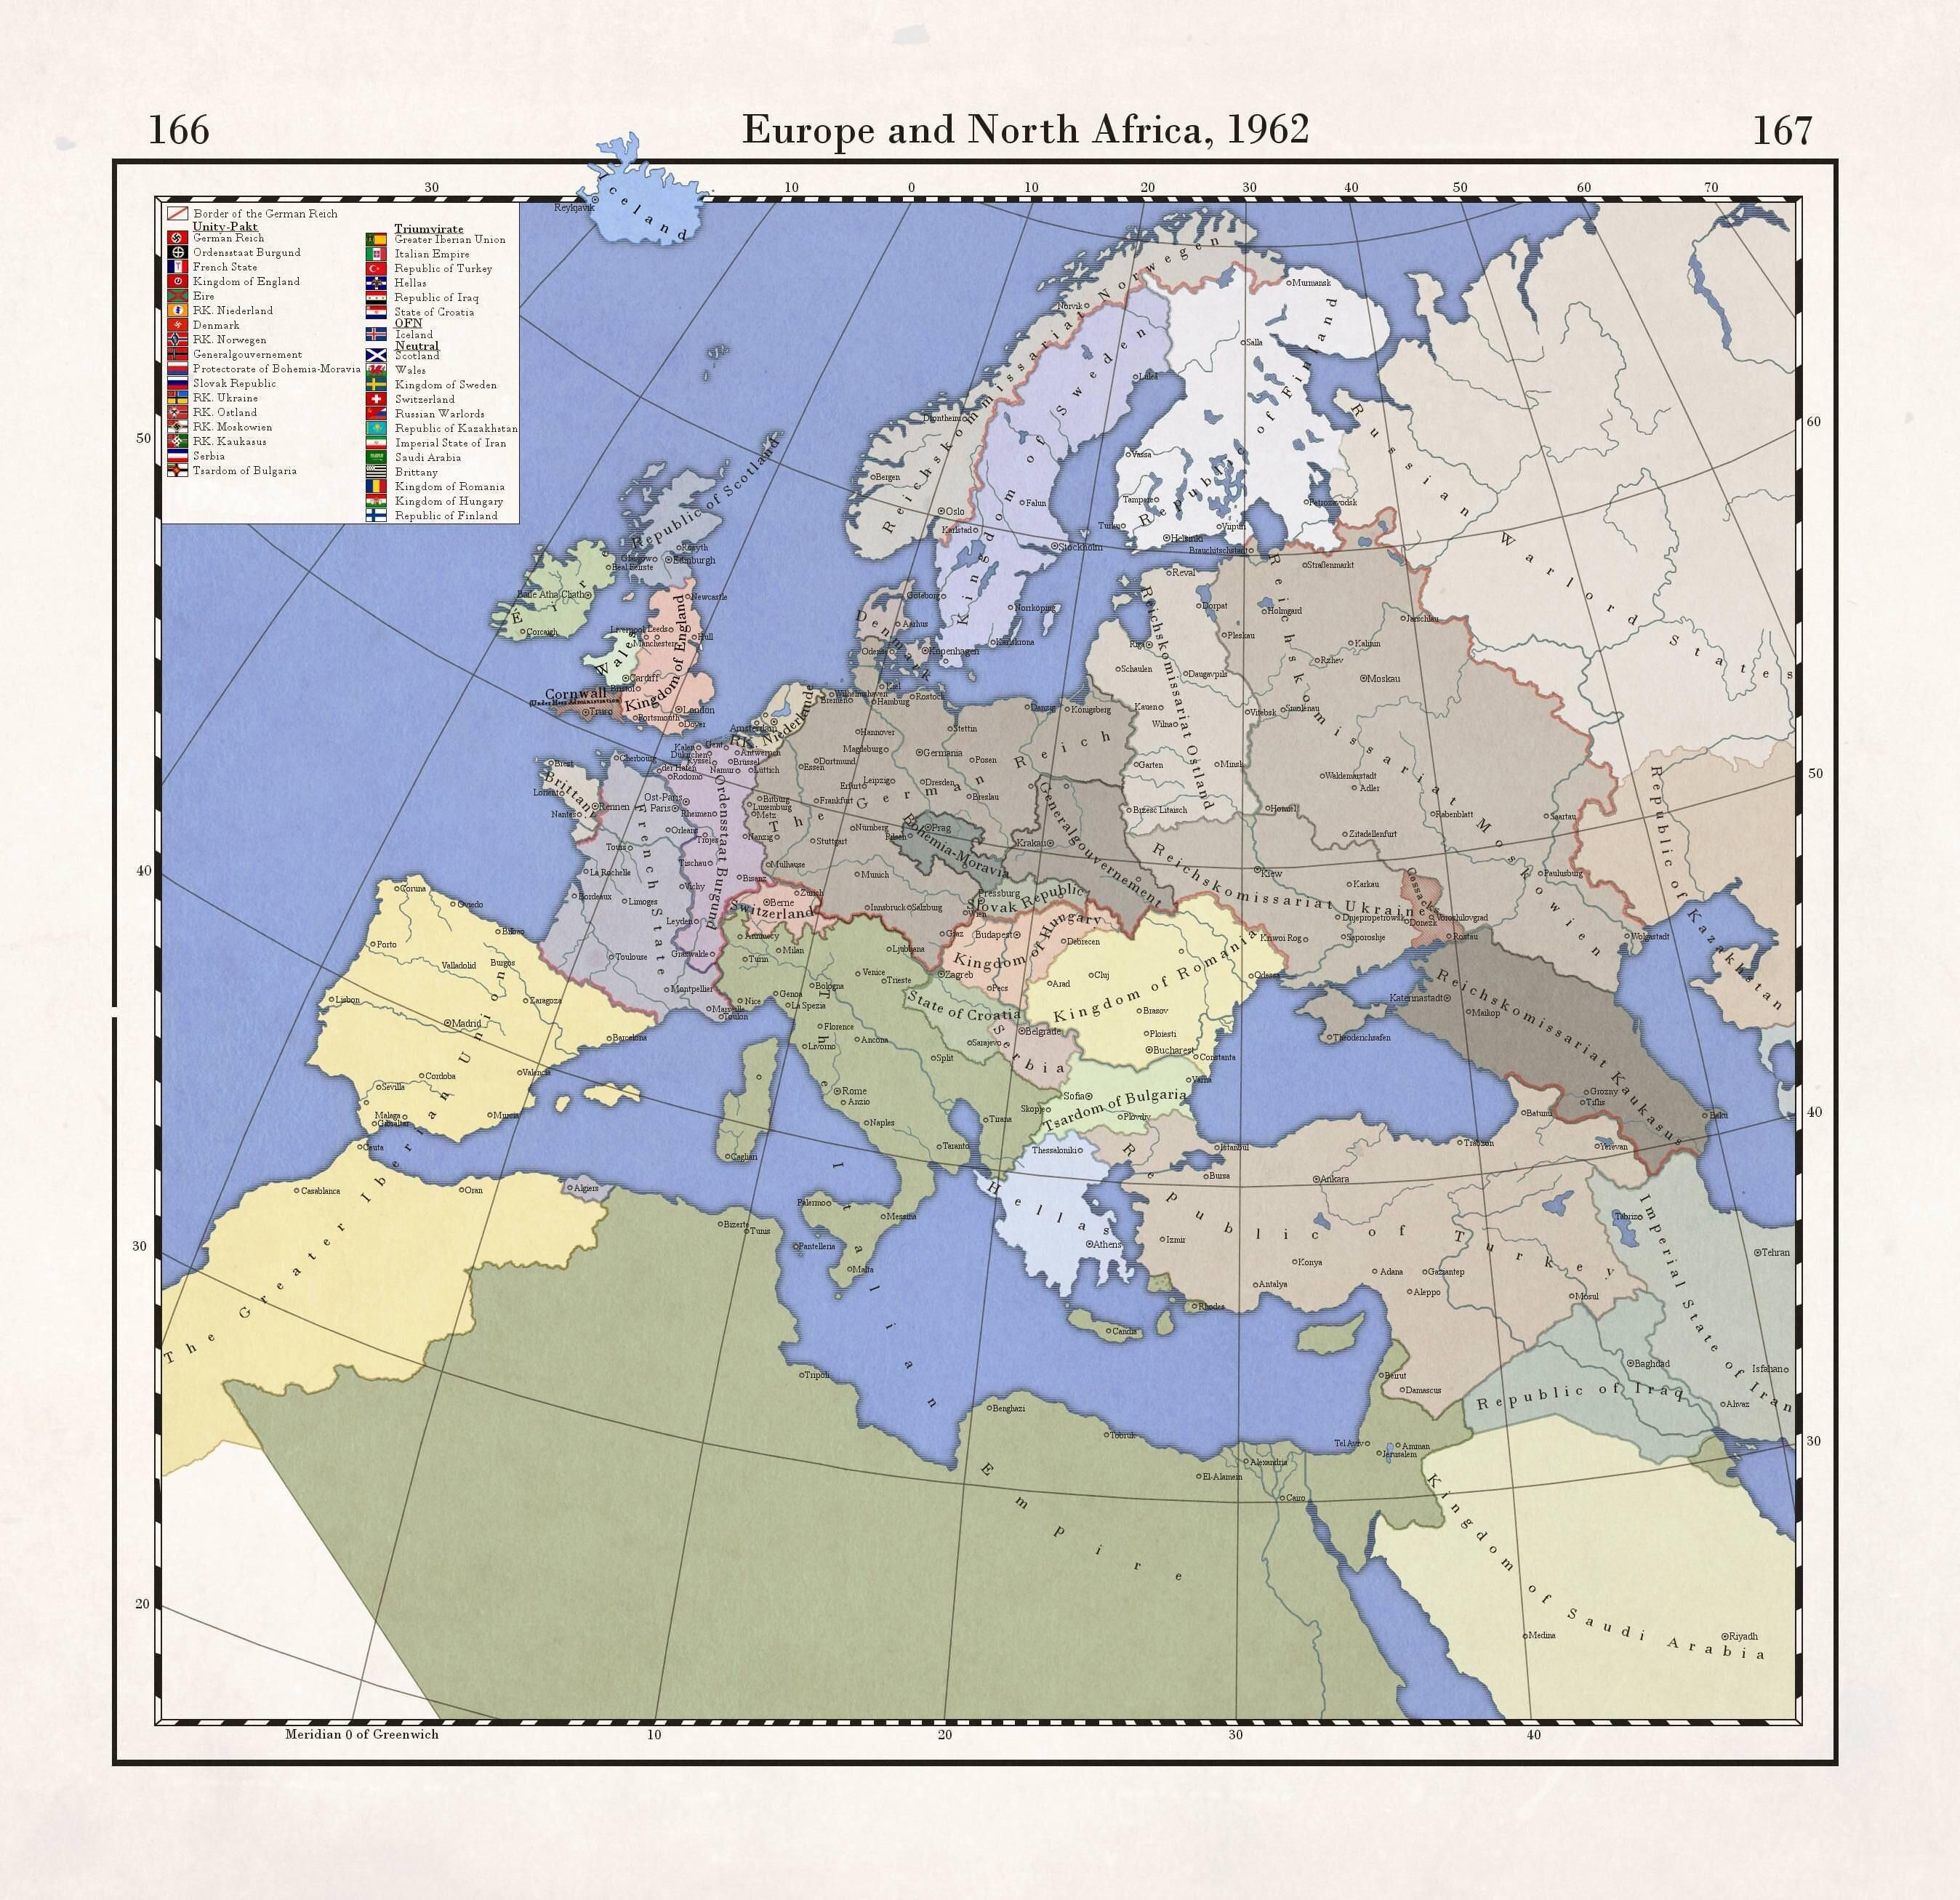 Pin By Marian Mraz On Alternate History Maps And Flags Map